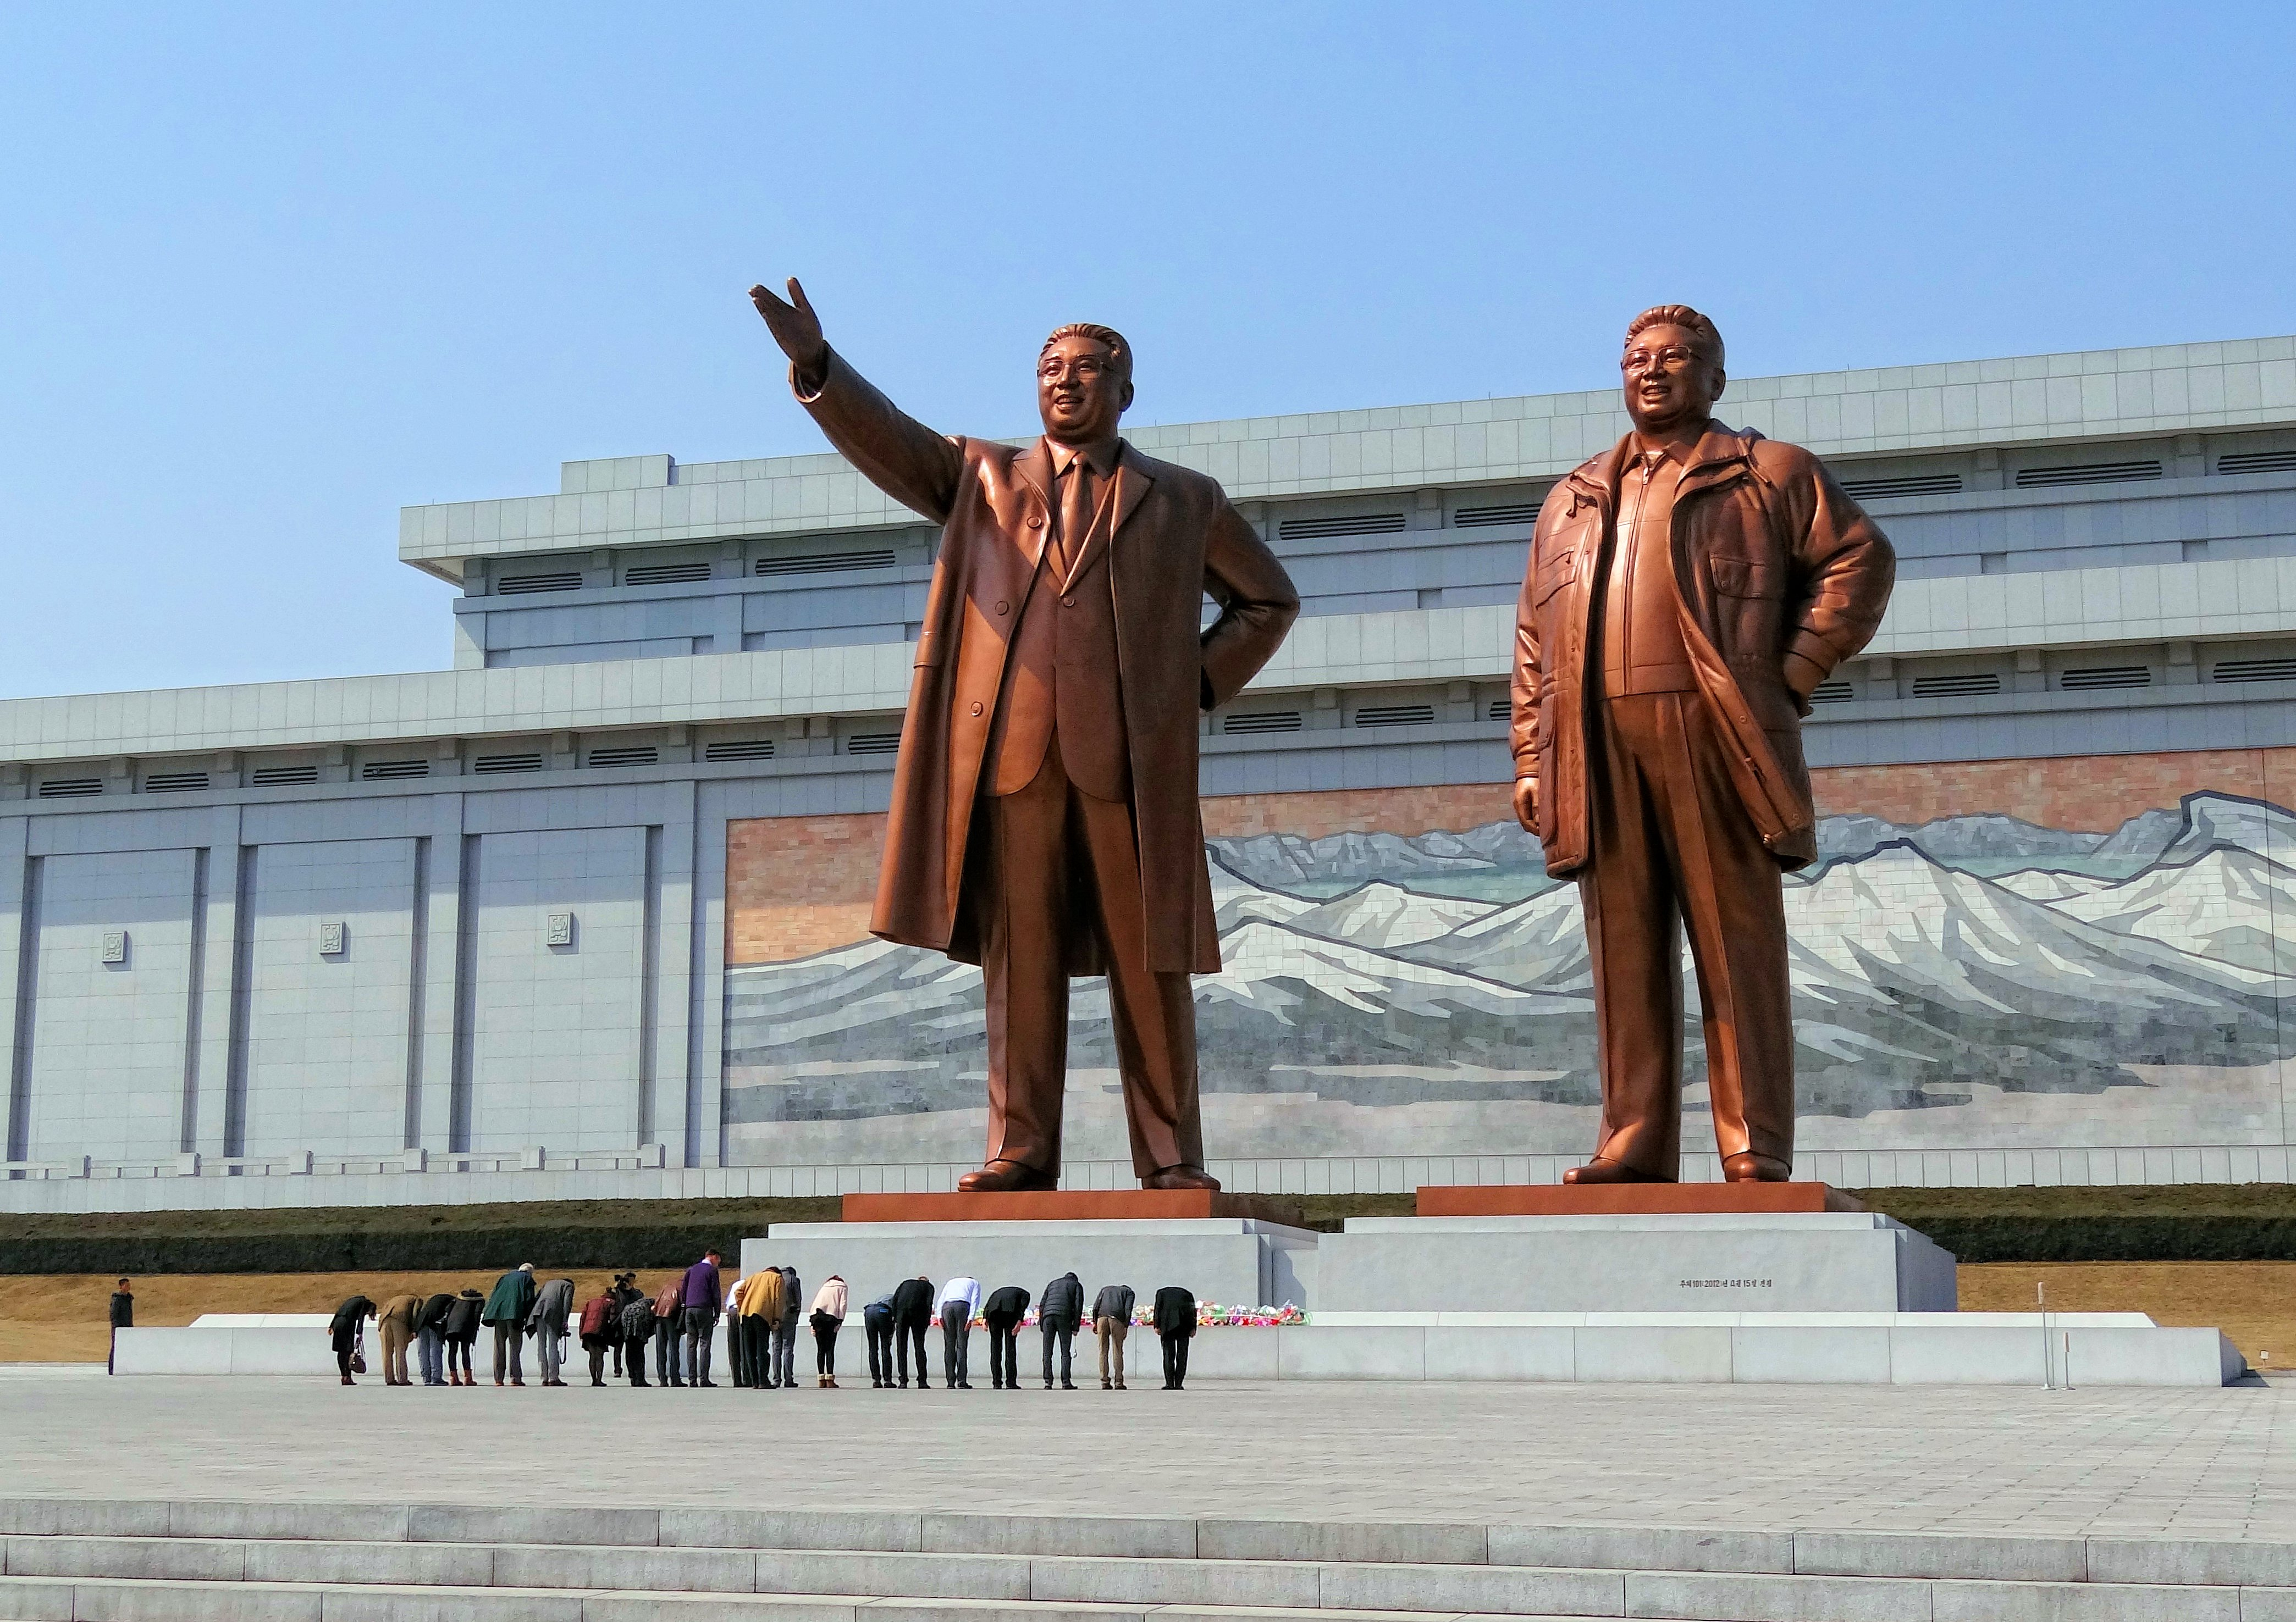 North-Korea-Mansudae-Monument-Bow-2014.jpg